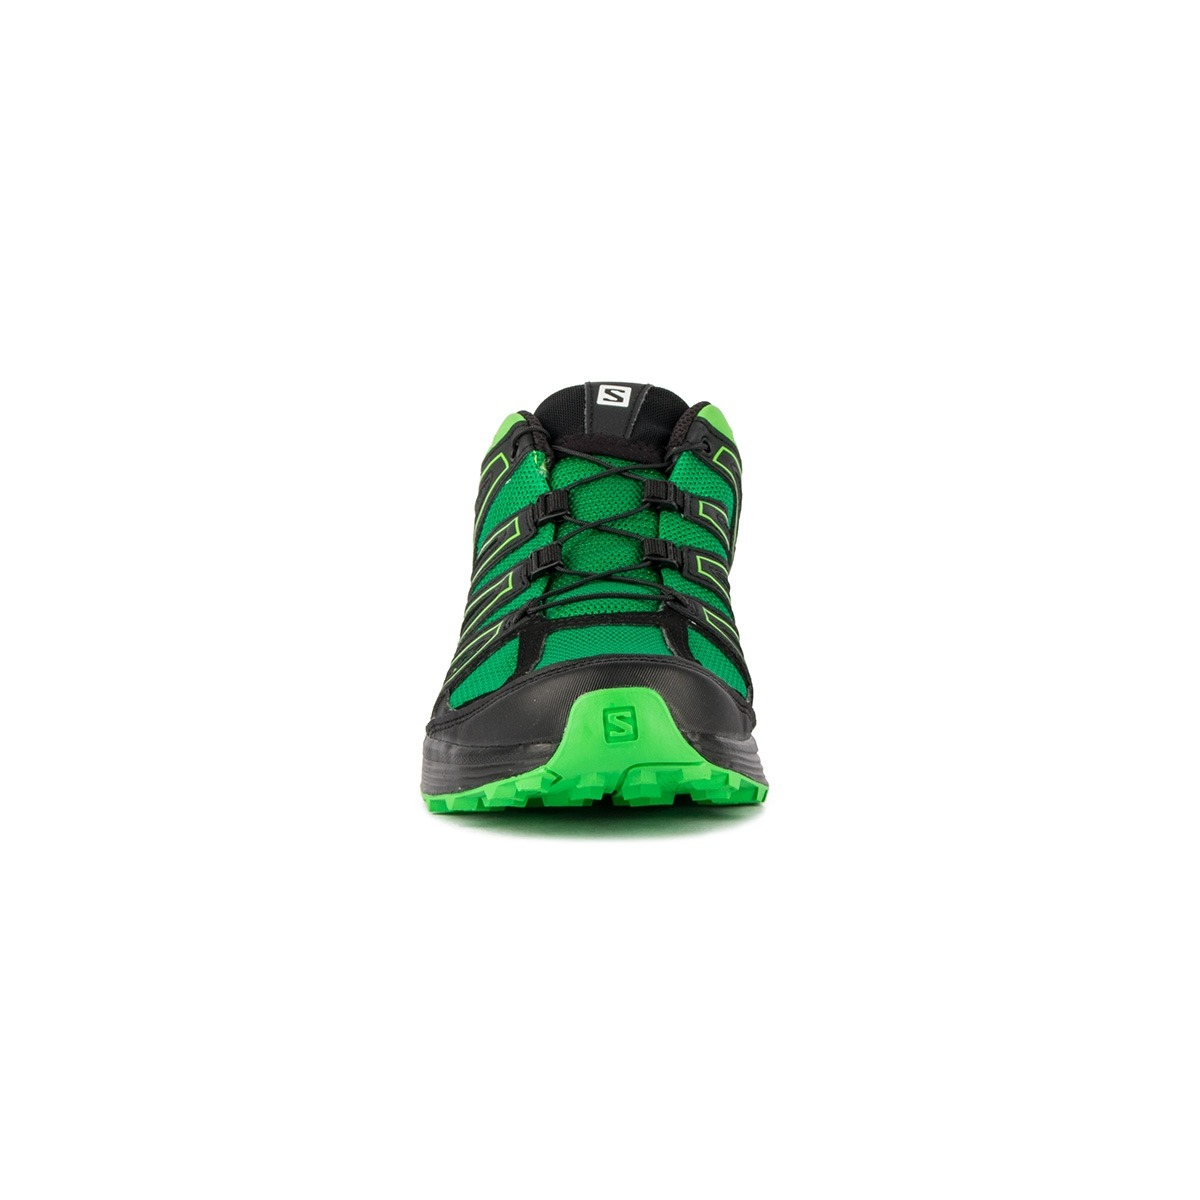 Salomon Zapatilla XT Maido Jolly Green Black Negro Verde Hombre